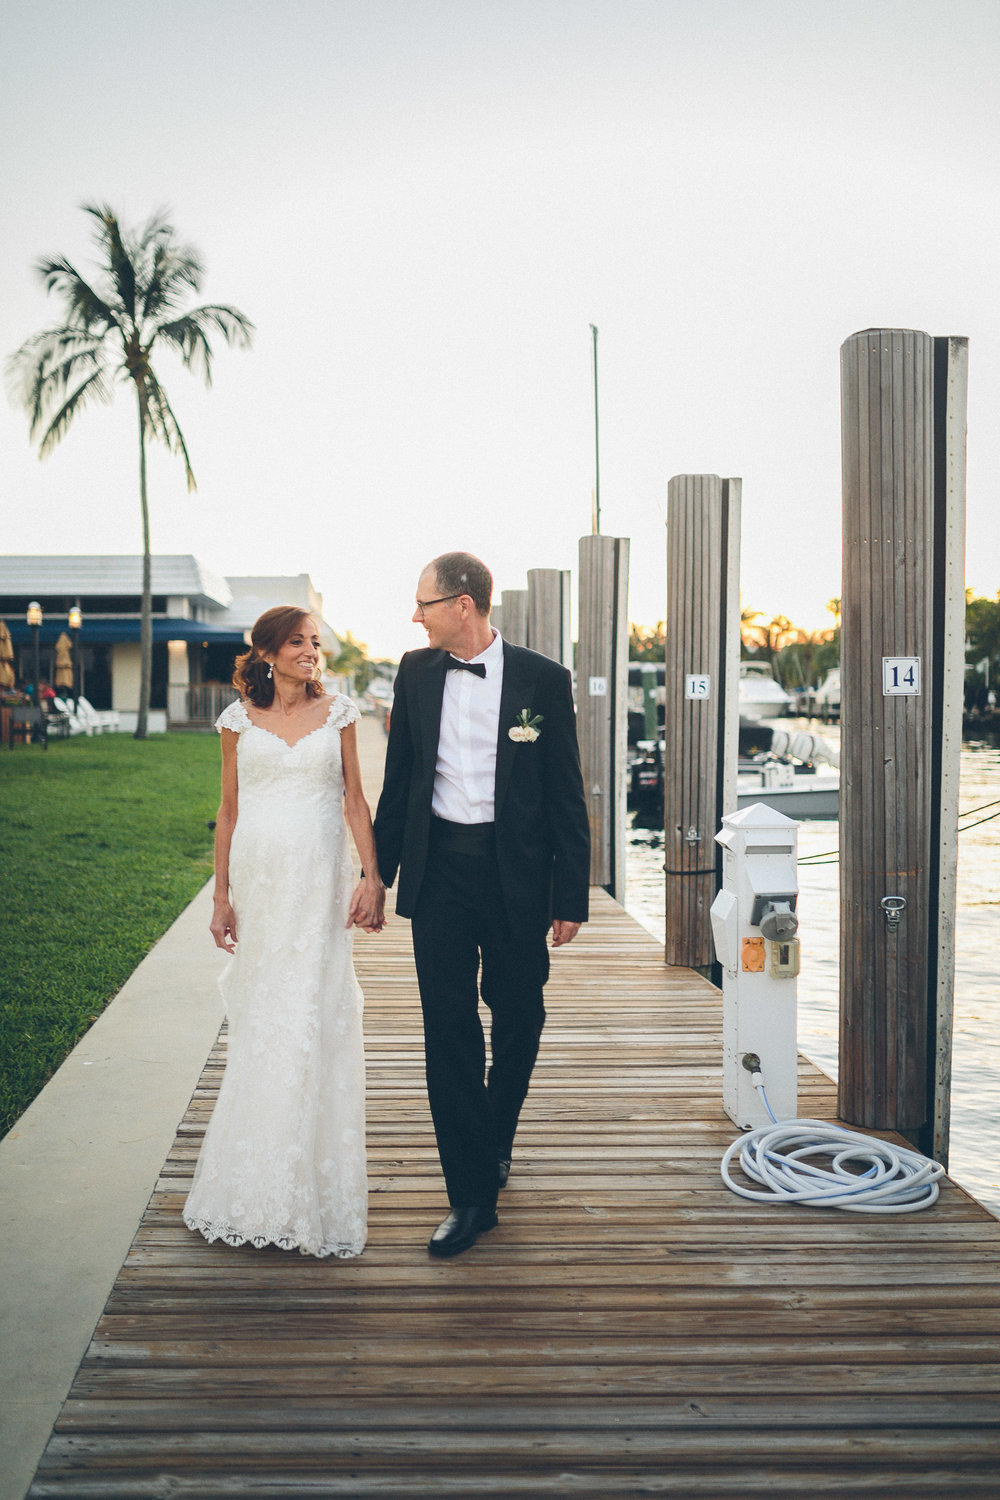 Soraya & David - A beautiful Lauderdale Yacht Club Wedding that is a sophisticated mix of nautical and traditional.